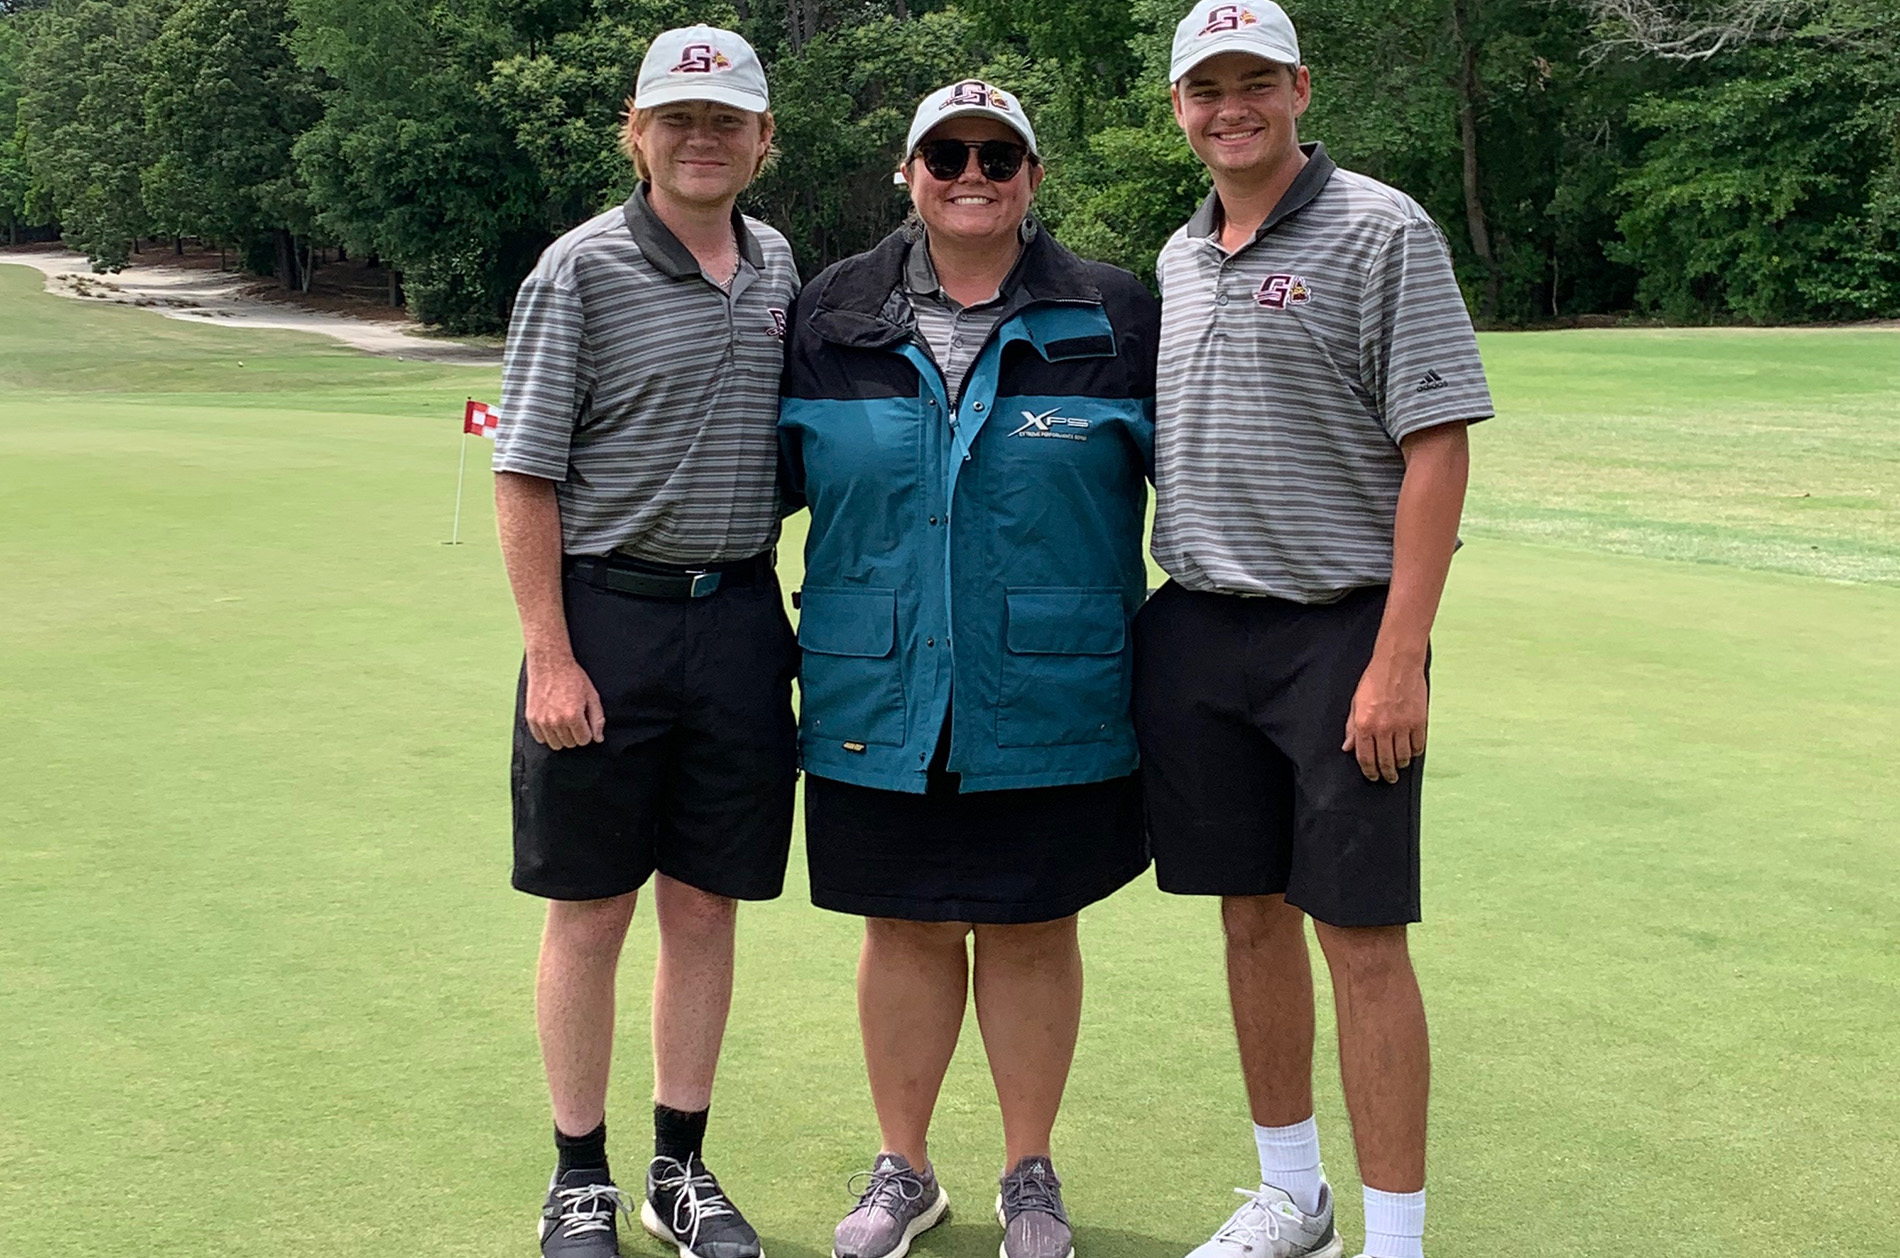 Nicole Amick and friends on golf course